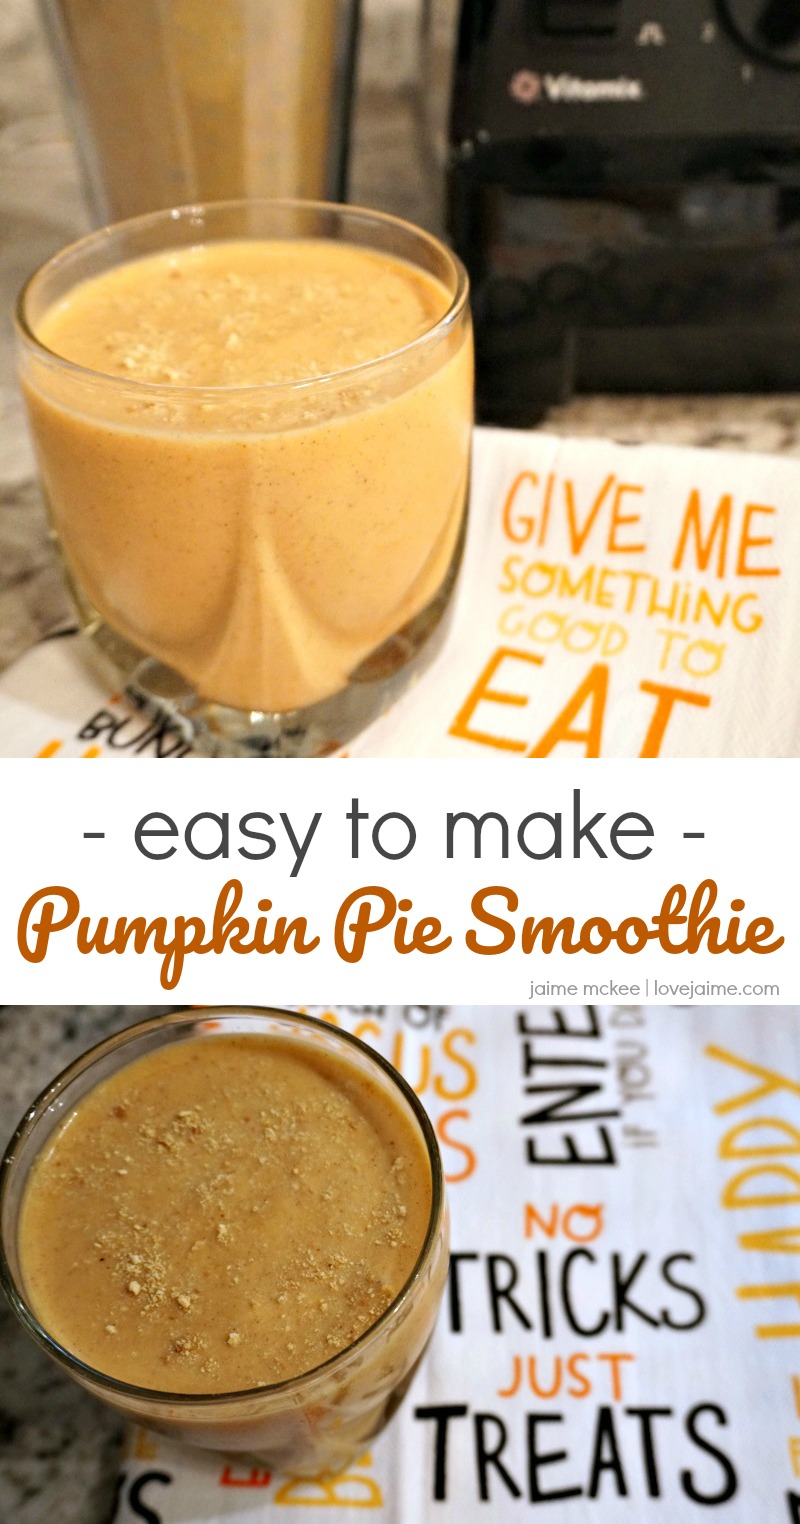 Pumpkin Pie Smoothie is simple with the help of the Vitamix Personal Cup Adapter! This recipe can be made and consumed in one container. #recipe #pumpkin #smoothie